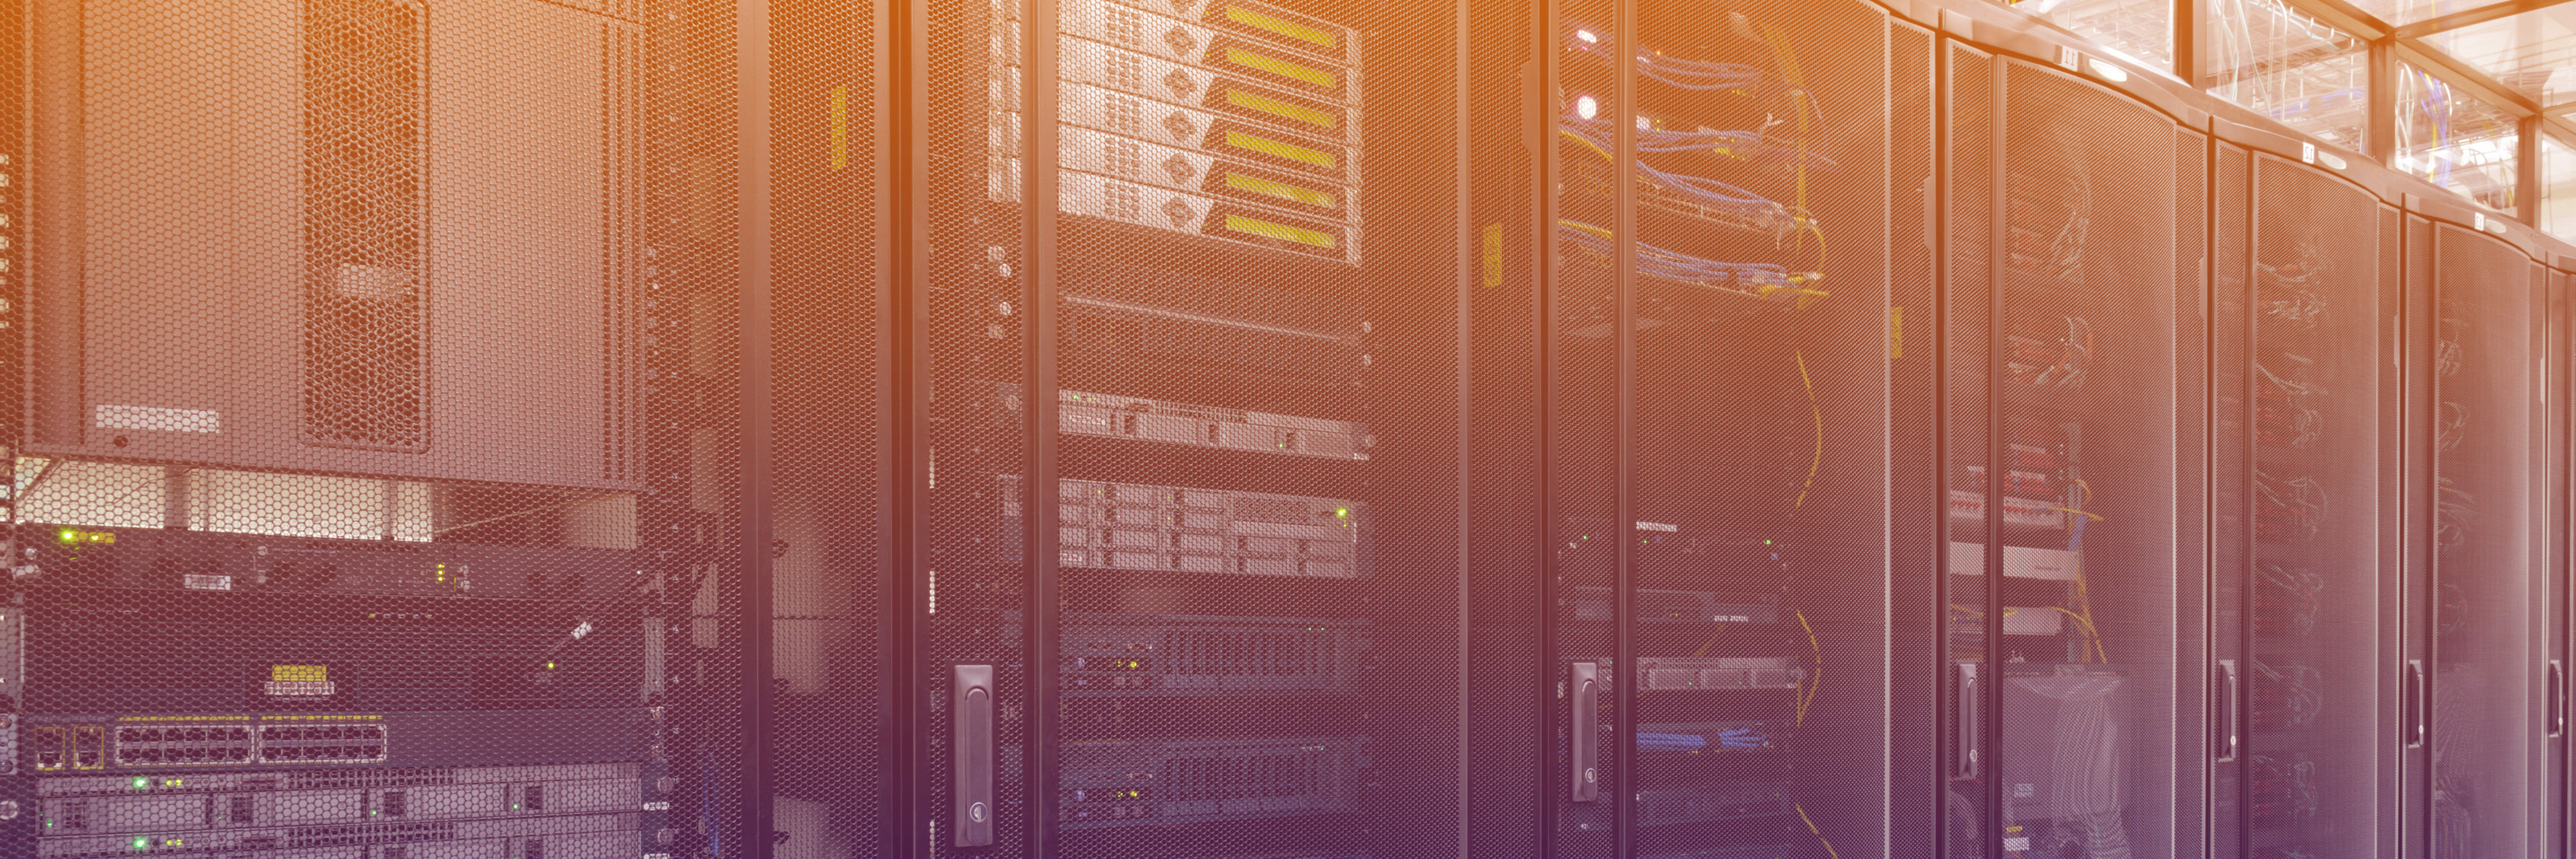 Is Your Amazon S3 Server Secure? A 1-in-10 Chance Says It's Not